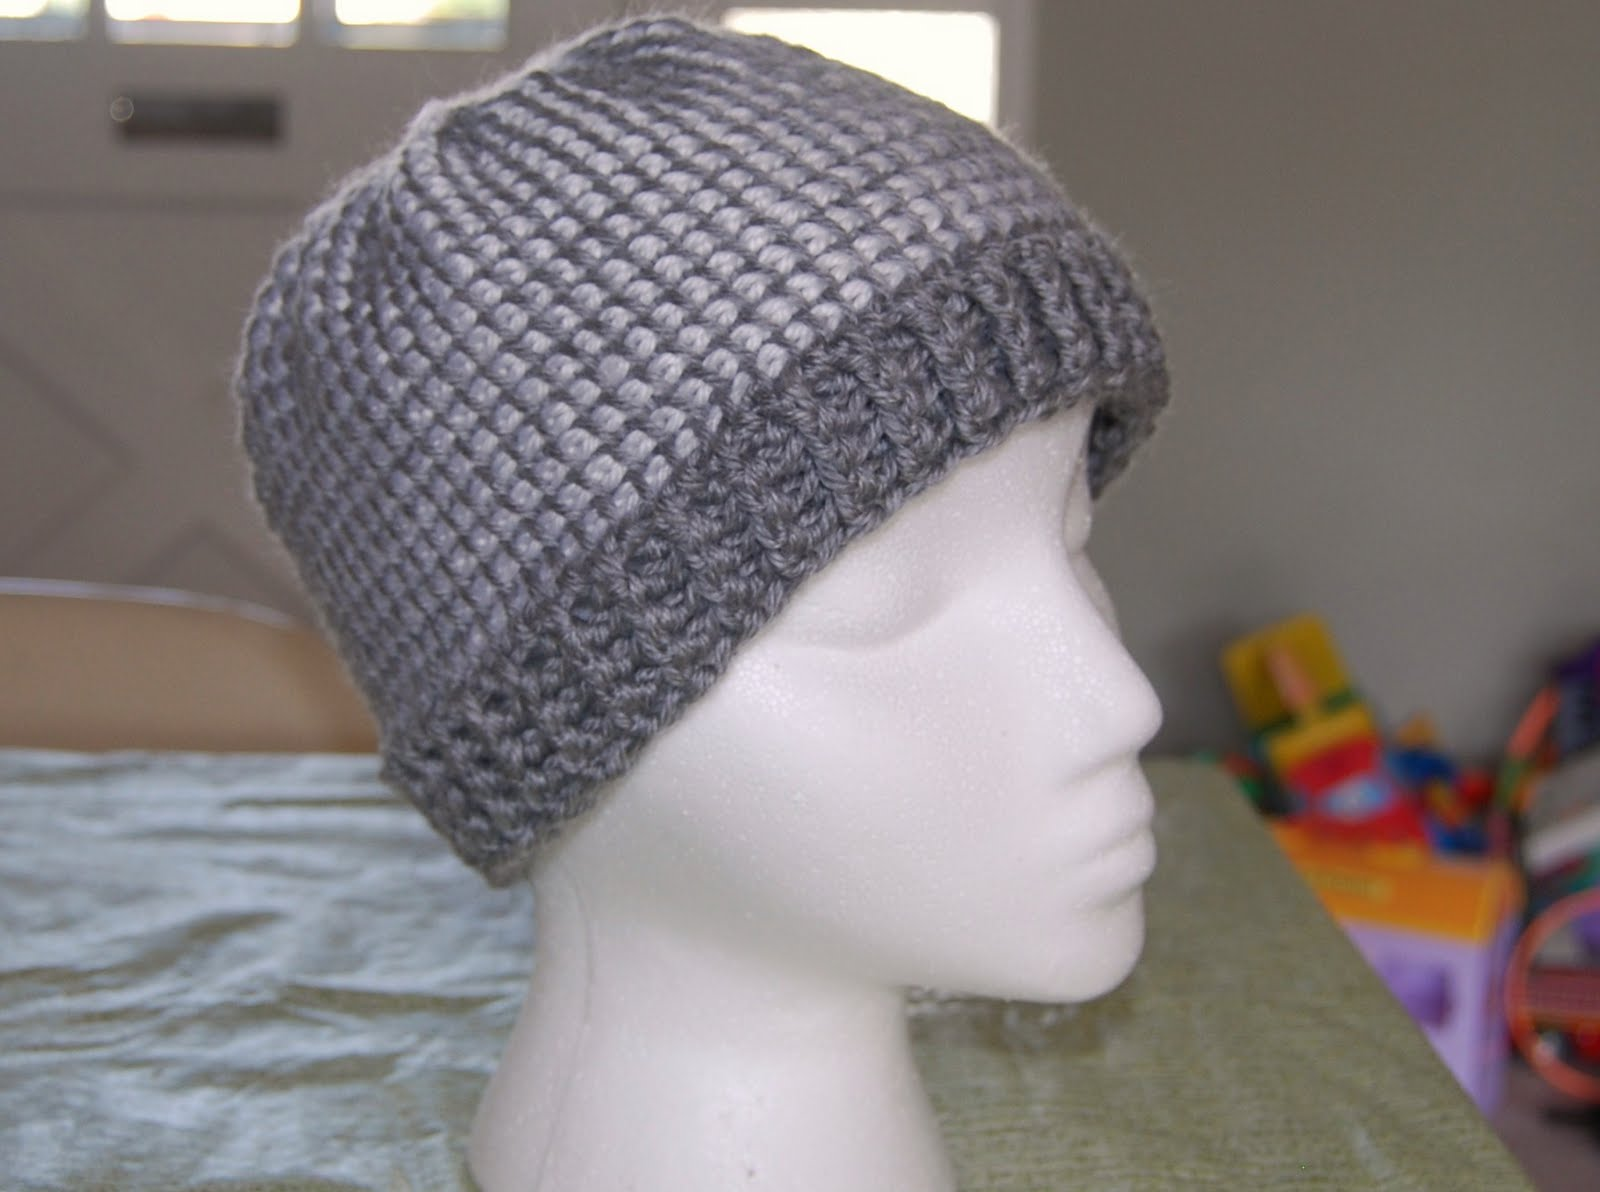 Crochet Pattern Mens Hat With Brim : The Laughing Willow: Ribbed Brim Tunisian Hat